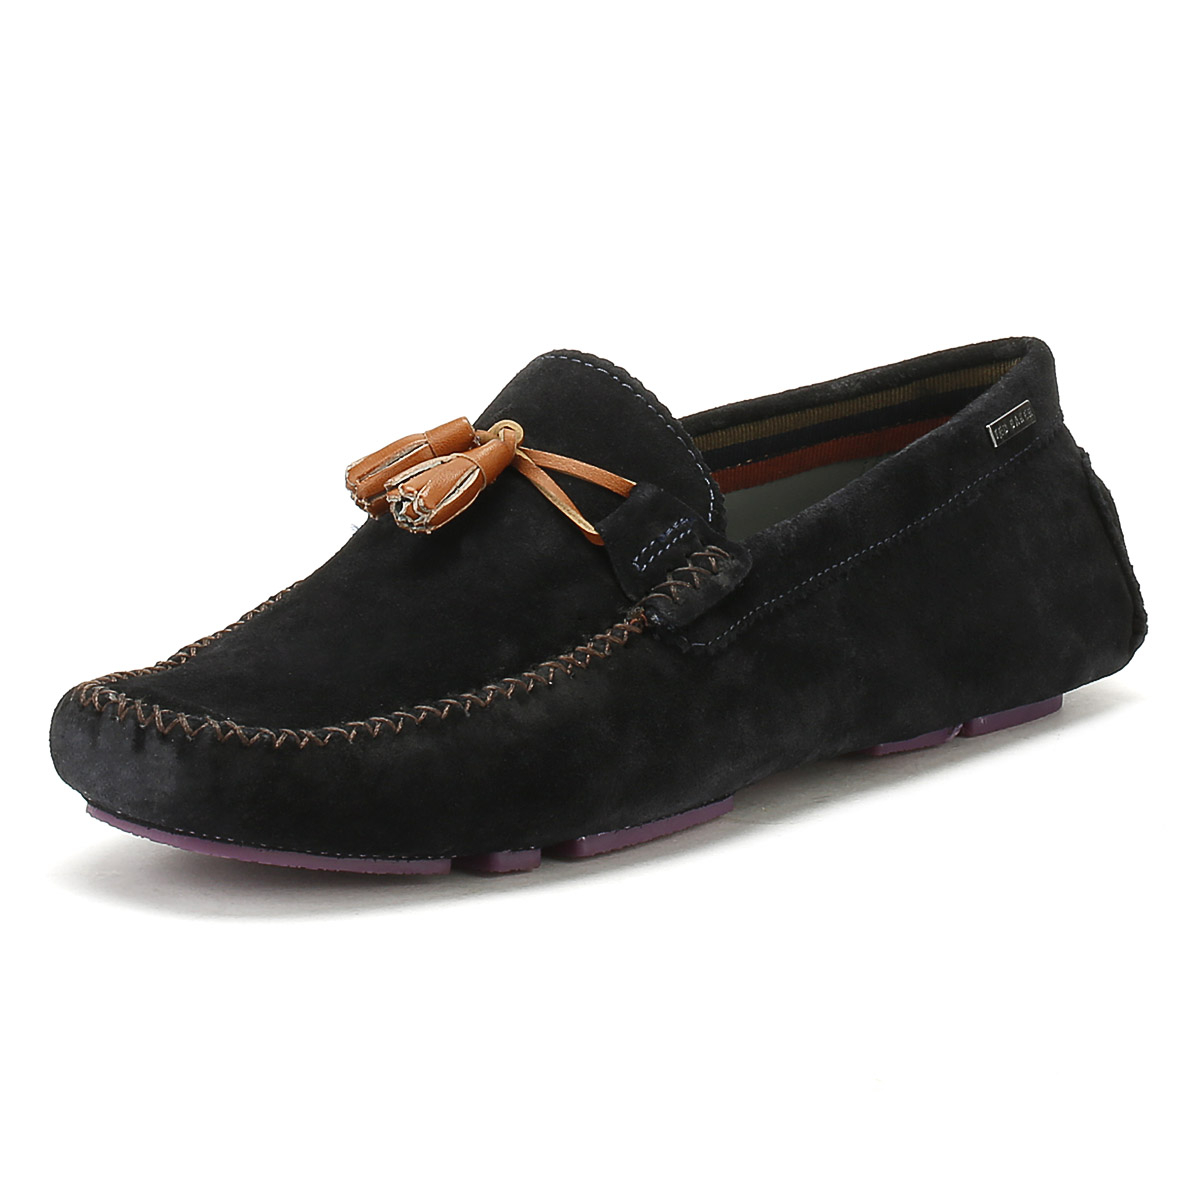 7762147031c Details about Ted Baker Mens Dark Blue Urbonn Suede Shoes Casual Moccasins  Loafers